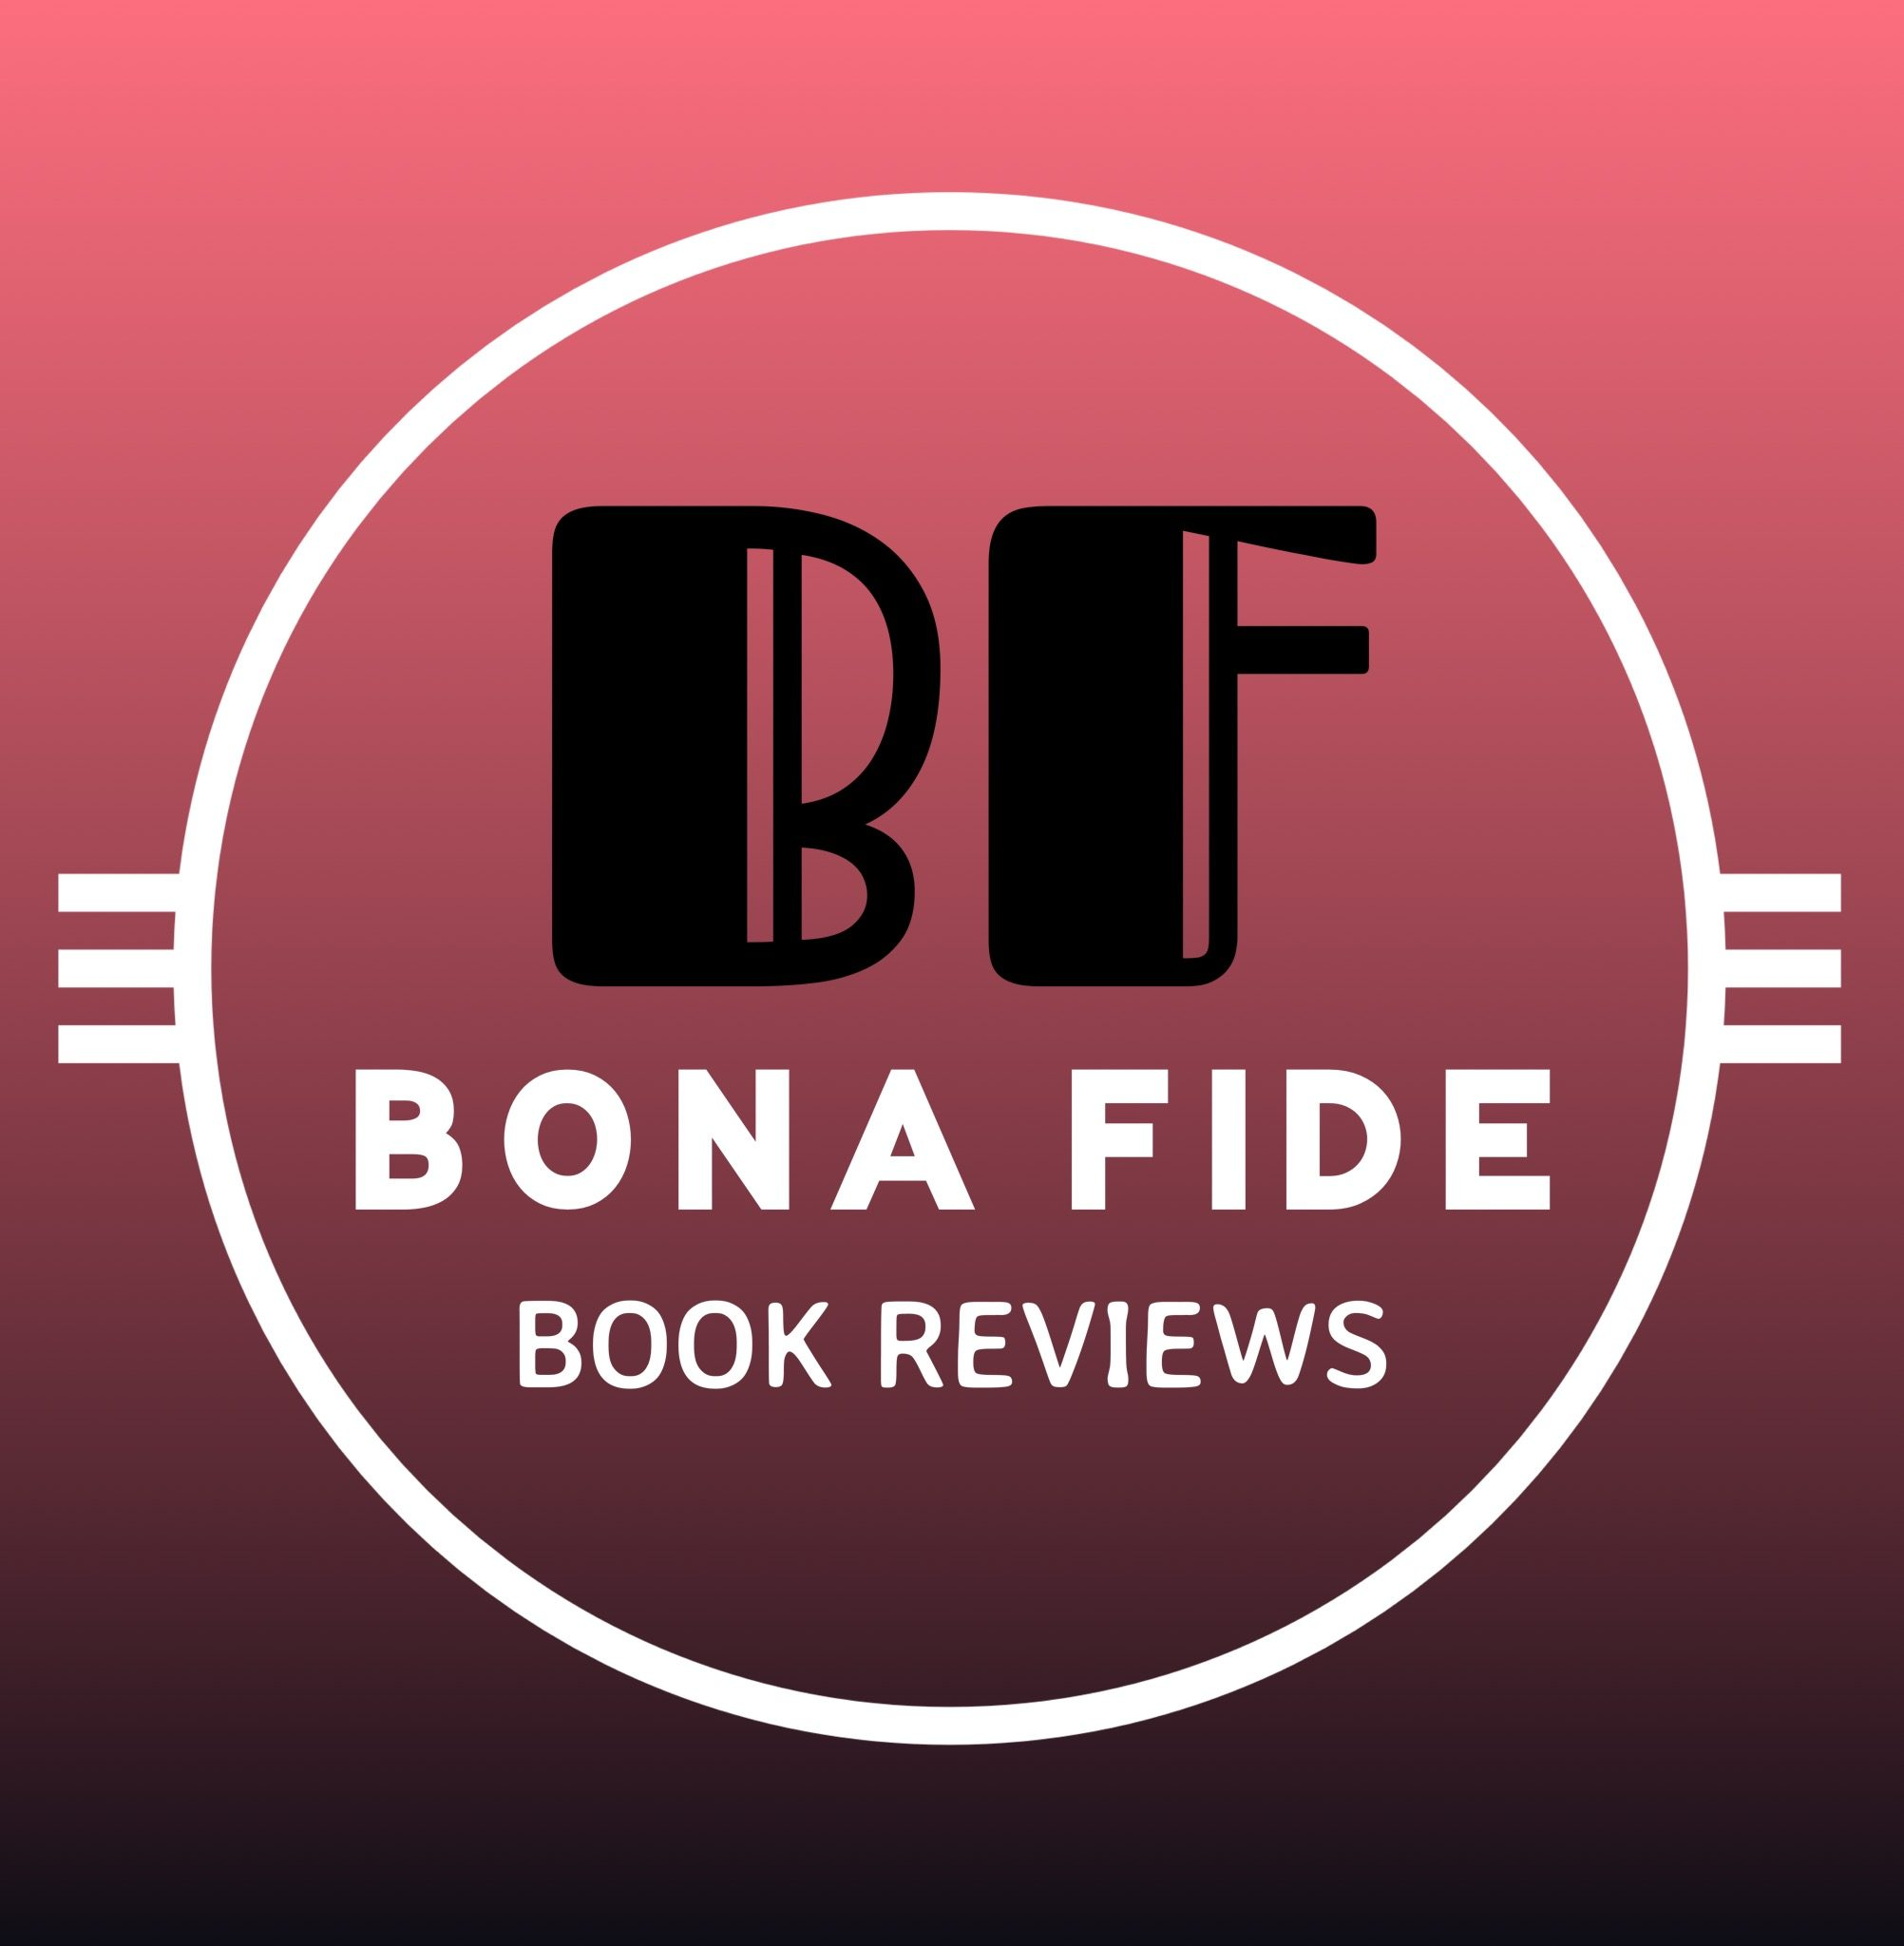 Bona Fide Book Reviews